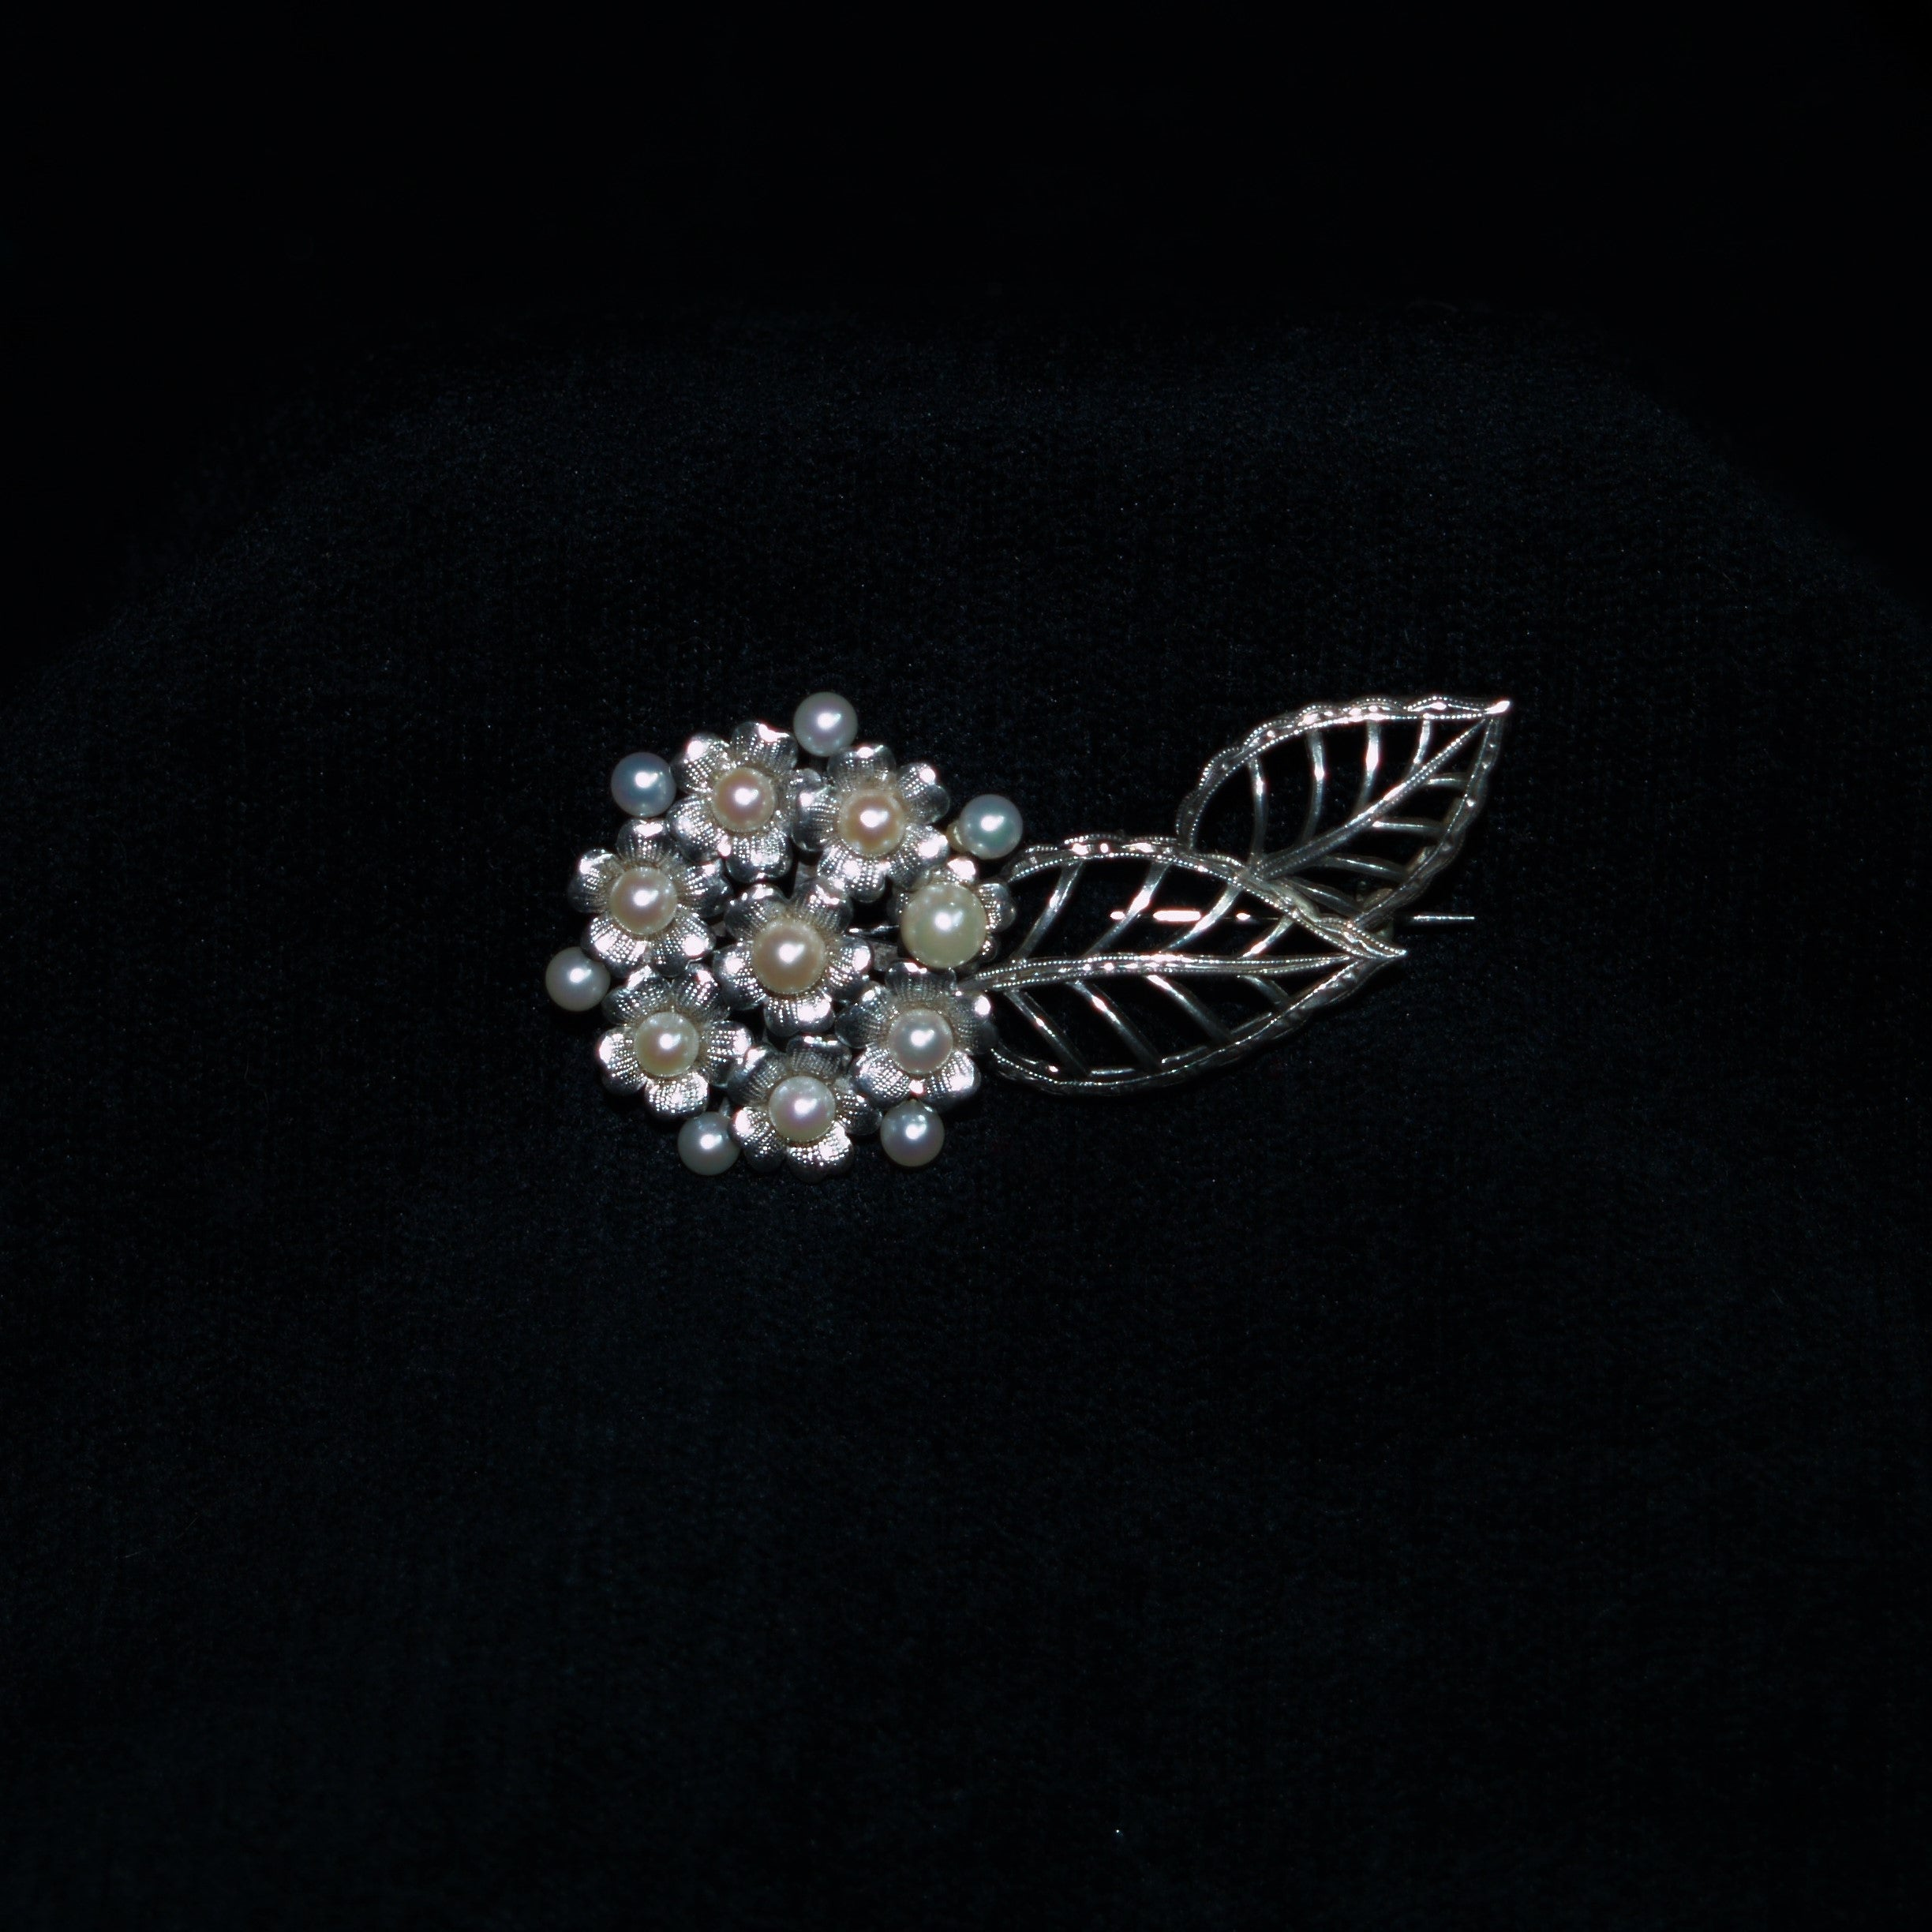 Vintage Mikimoto Sterling Silver & Pearl Brooch.